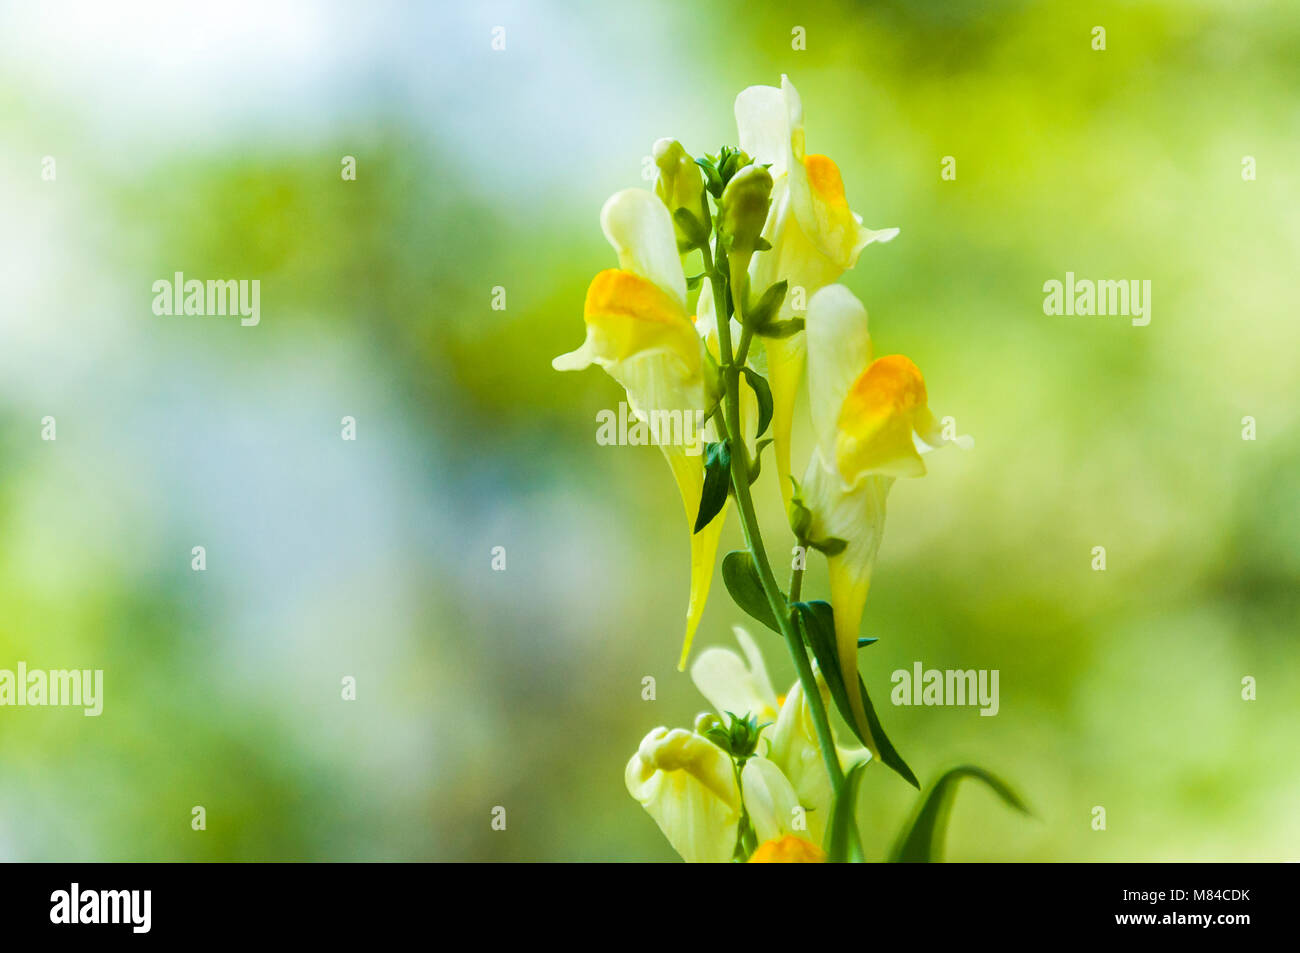 White yellow blooming Linaria wild flower plant. The genus is native to temperate regions of Europe, northern Africa - Stock Image